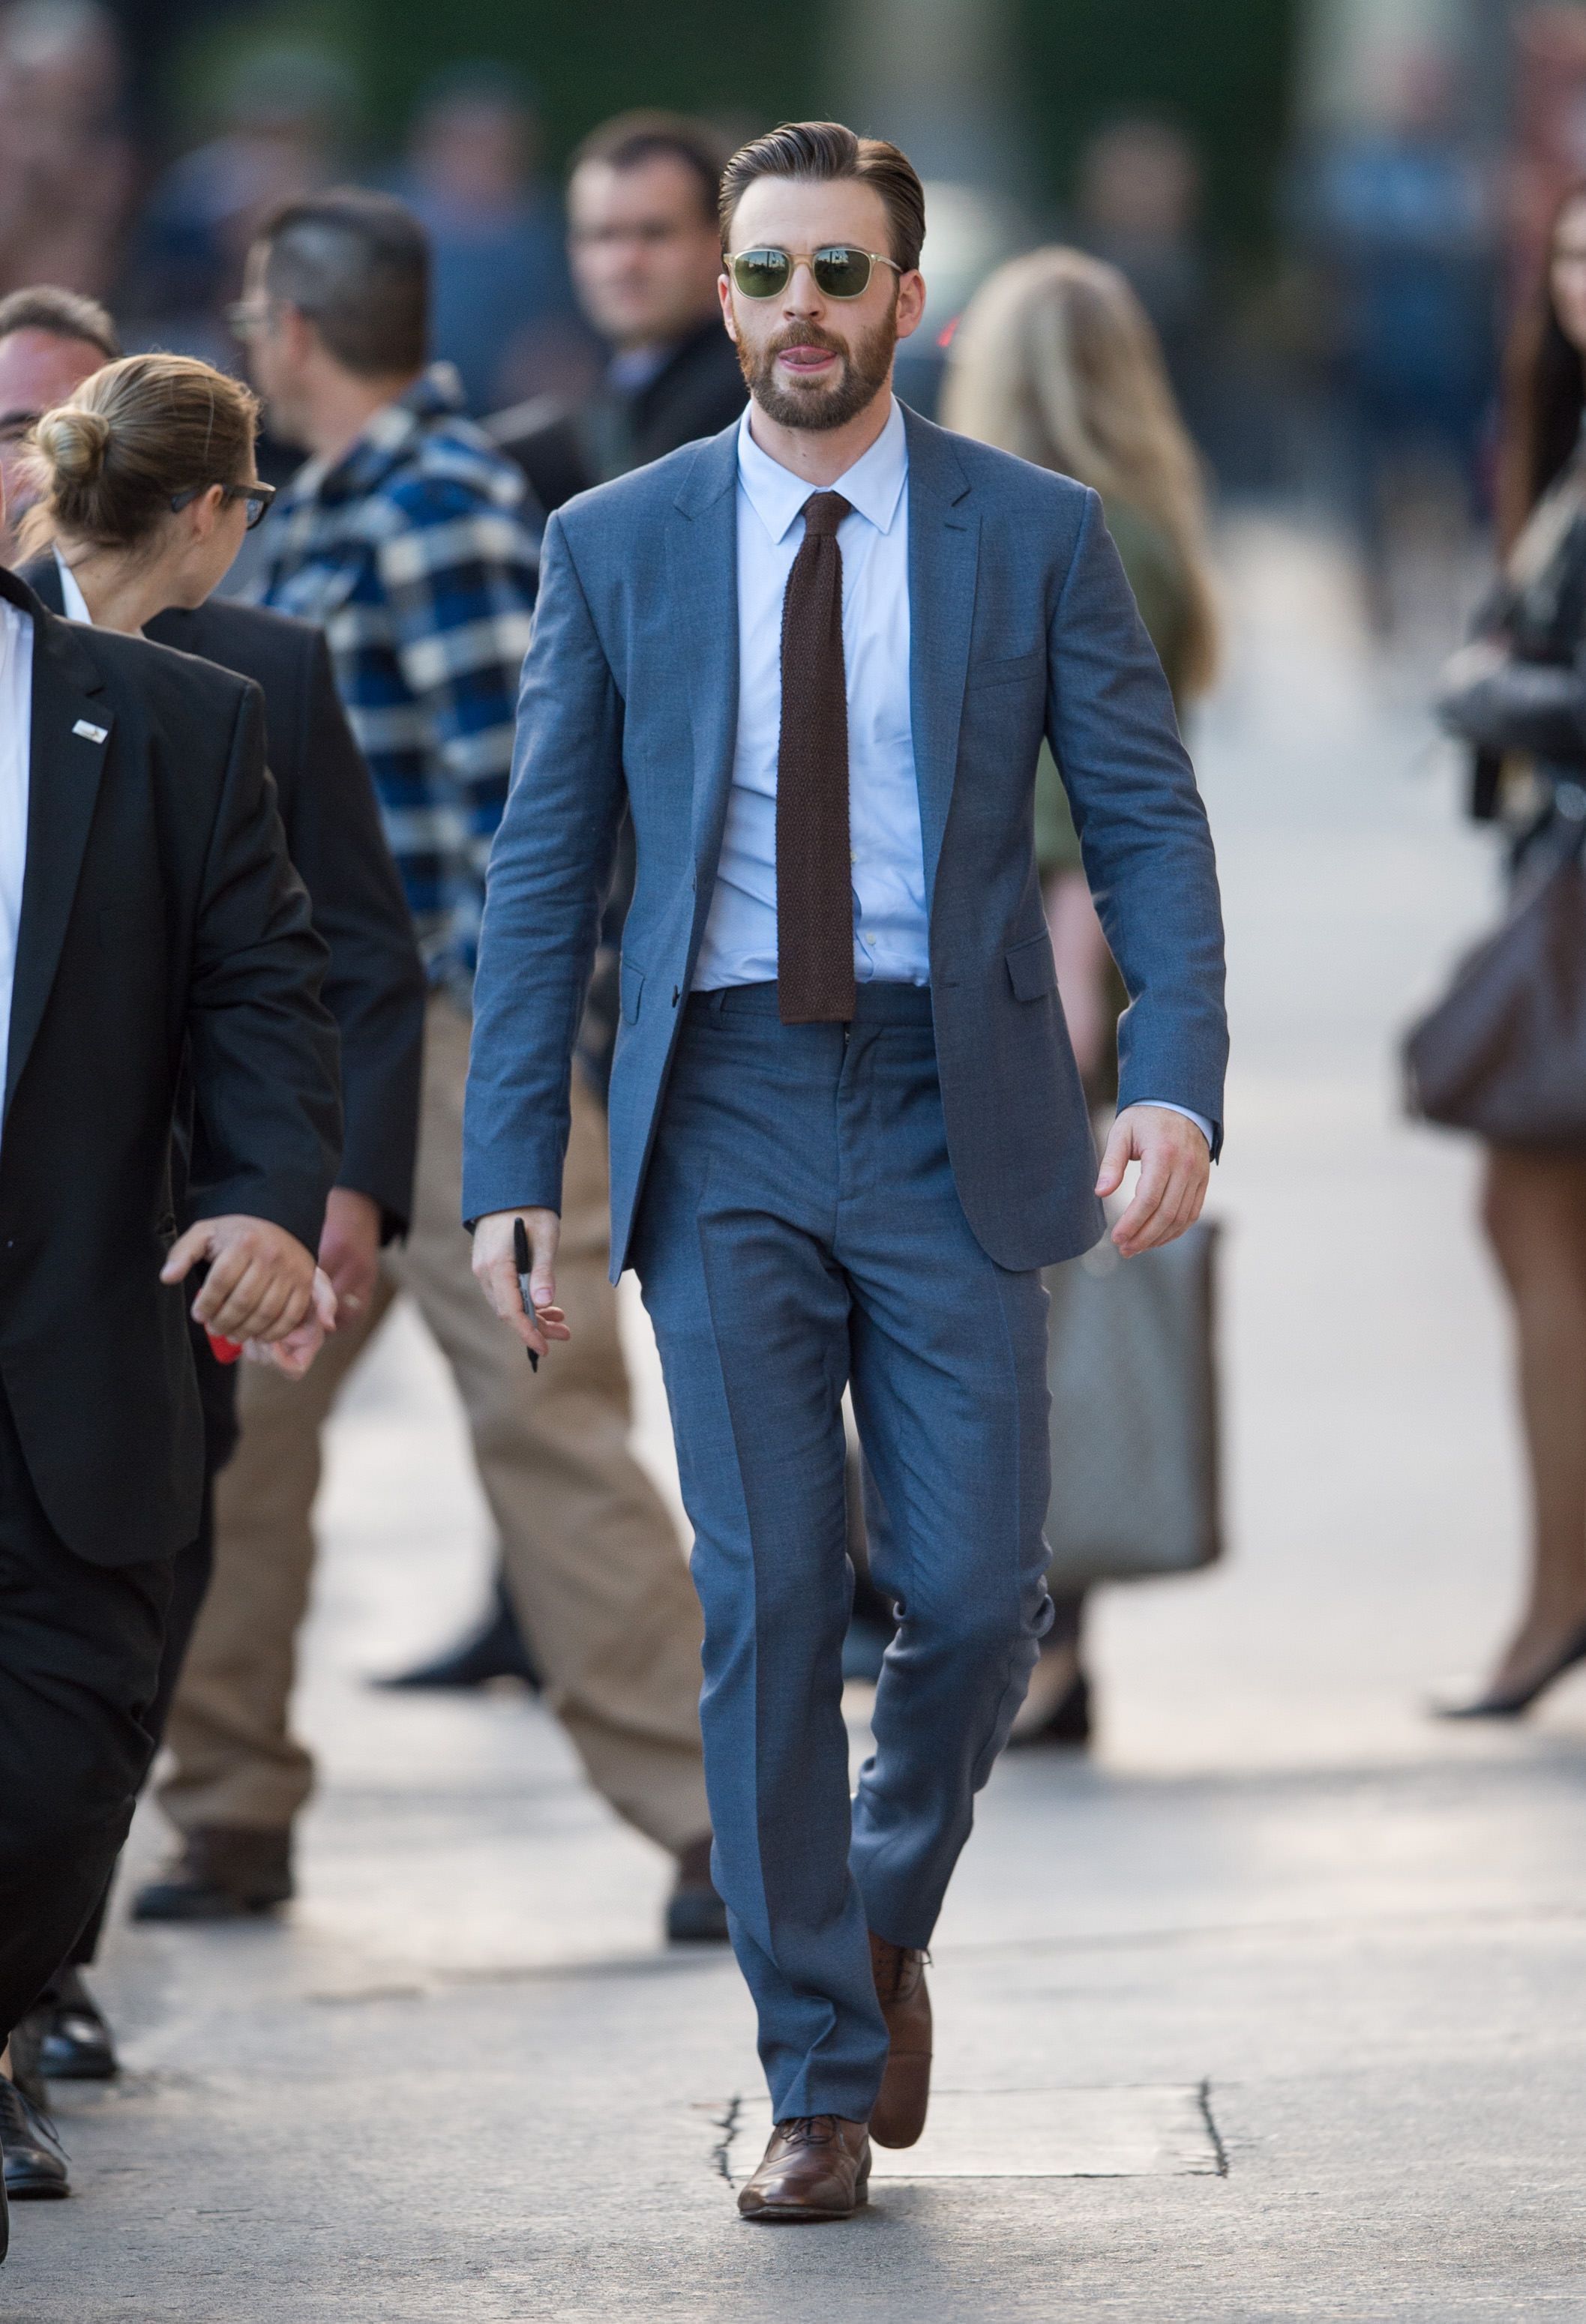 Chris Evans The easiest way to bring your suit into spring is with color.